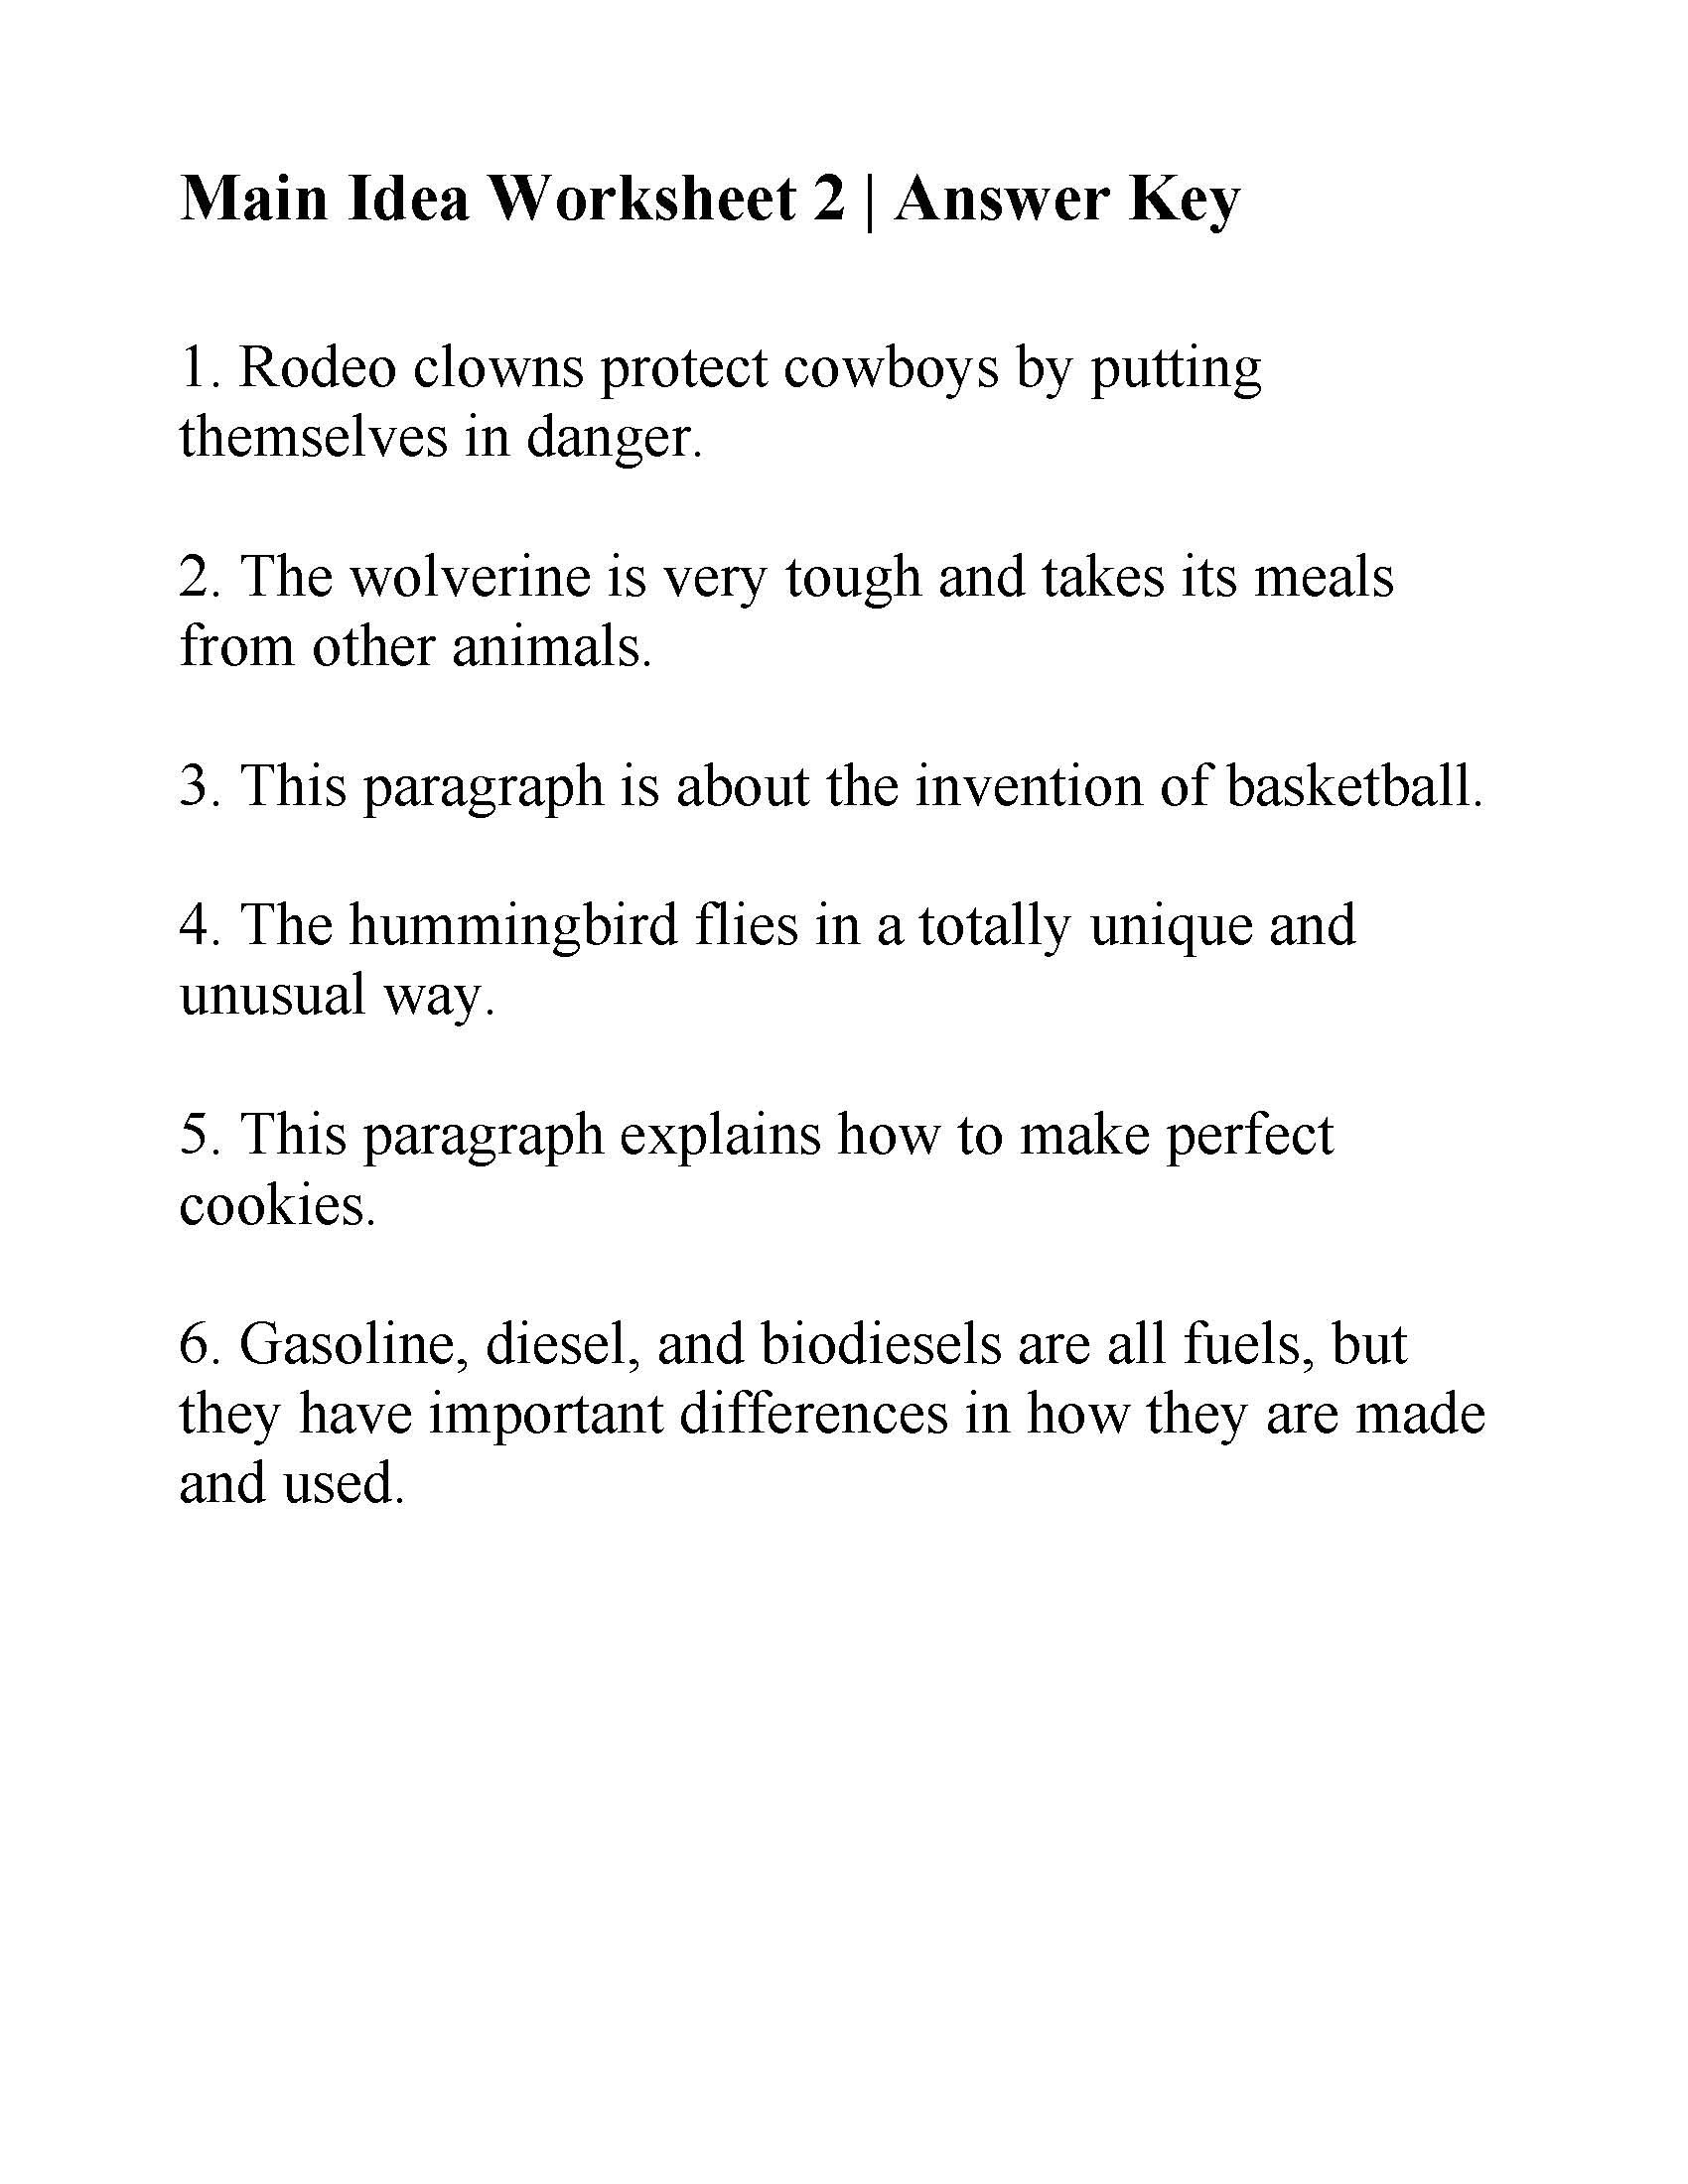 Proofreading Worksheets 3rd Grade 4 Free Grammar Worksheets Third Grade 3 Capitalization